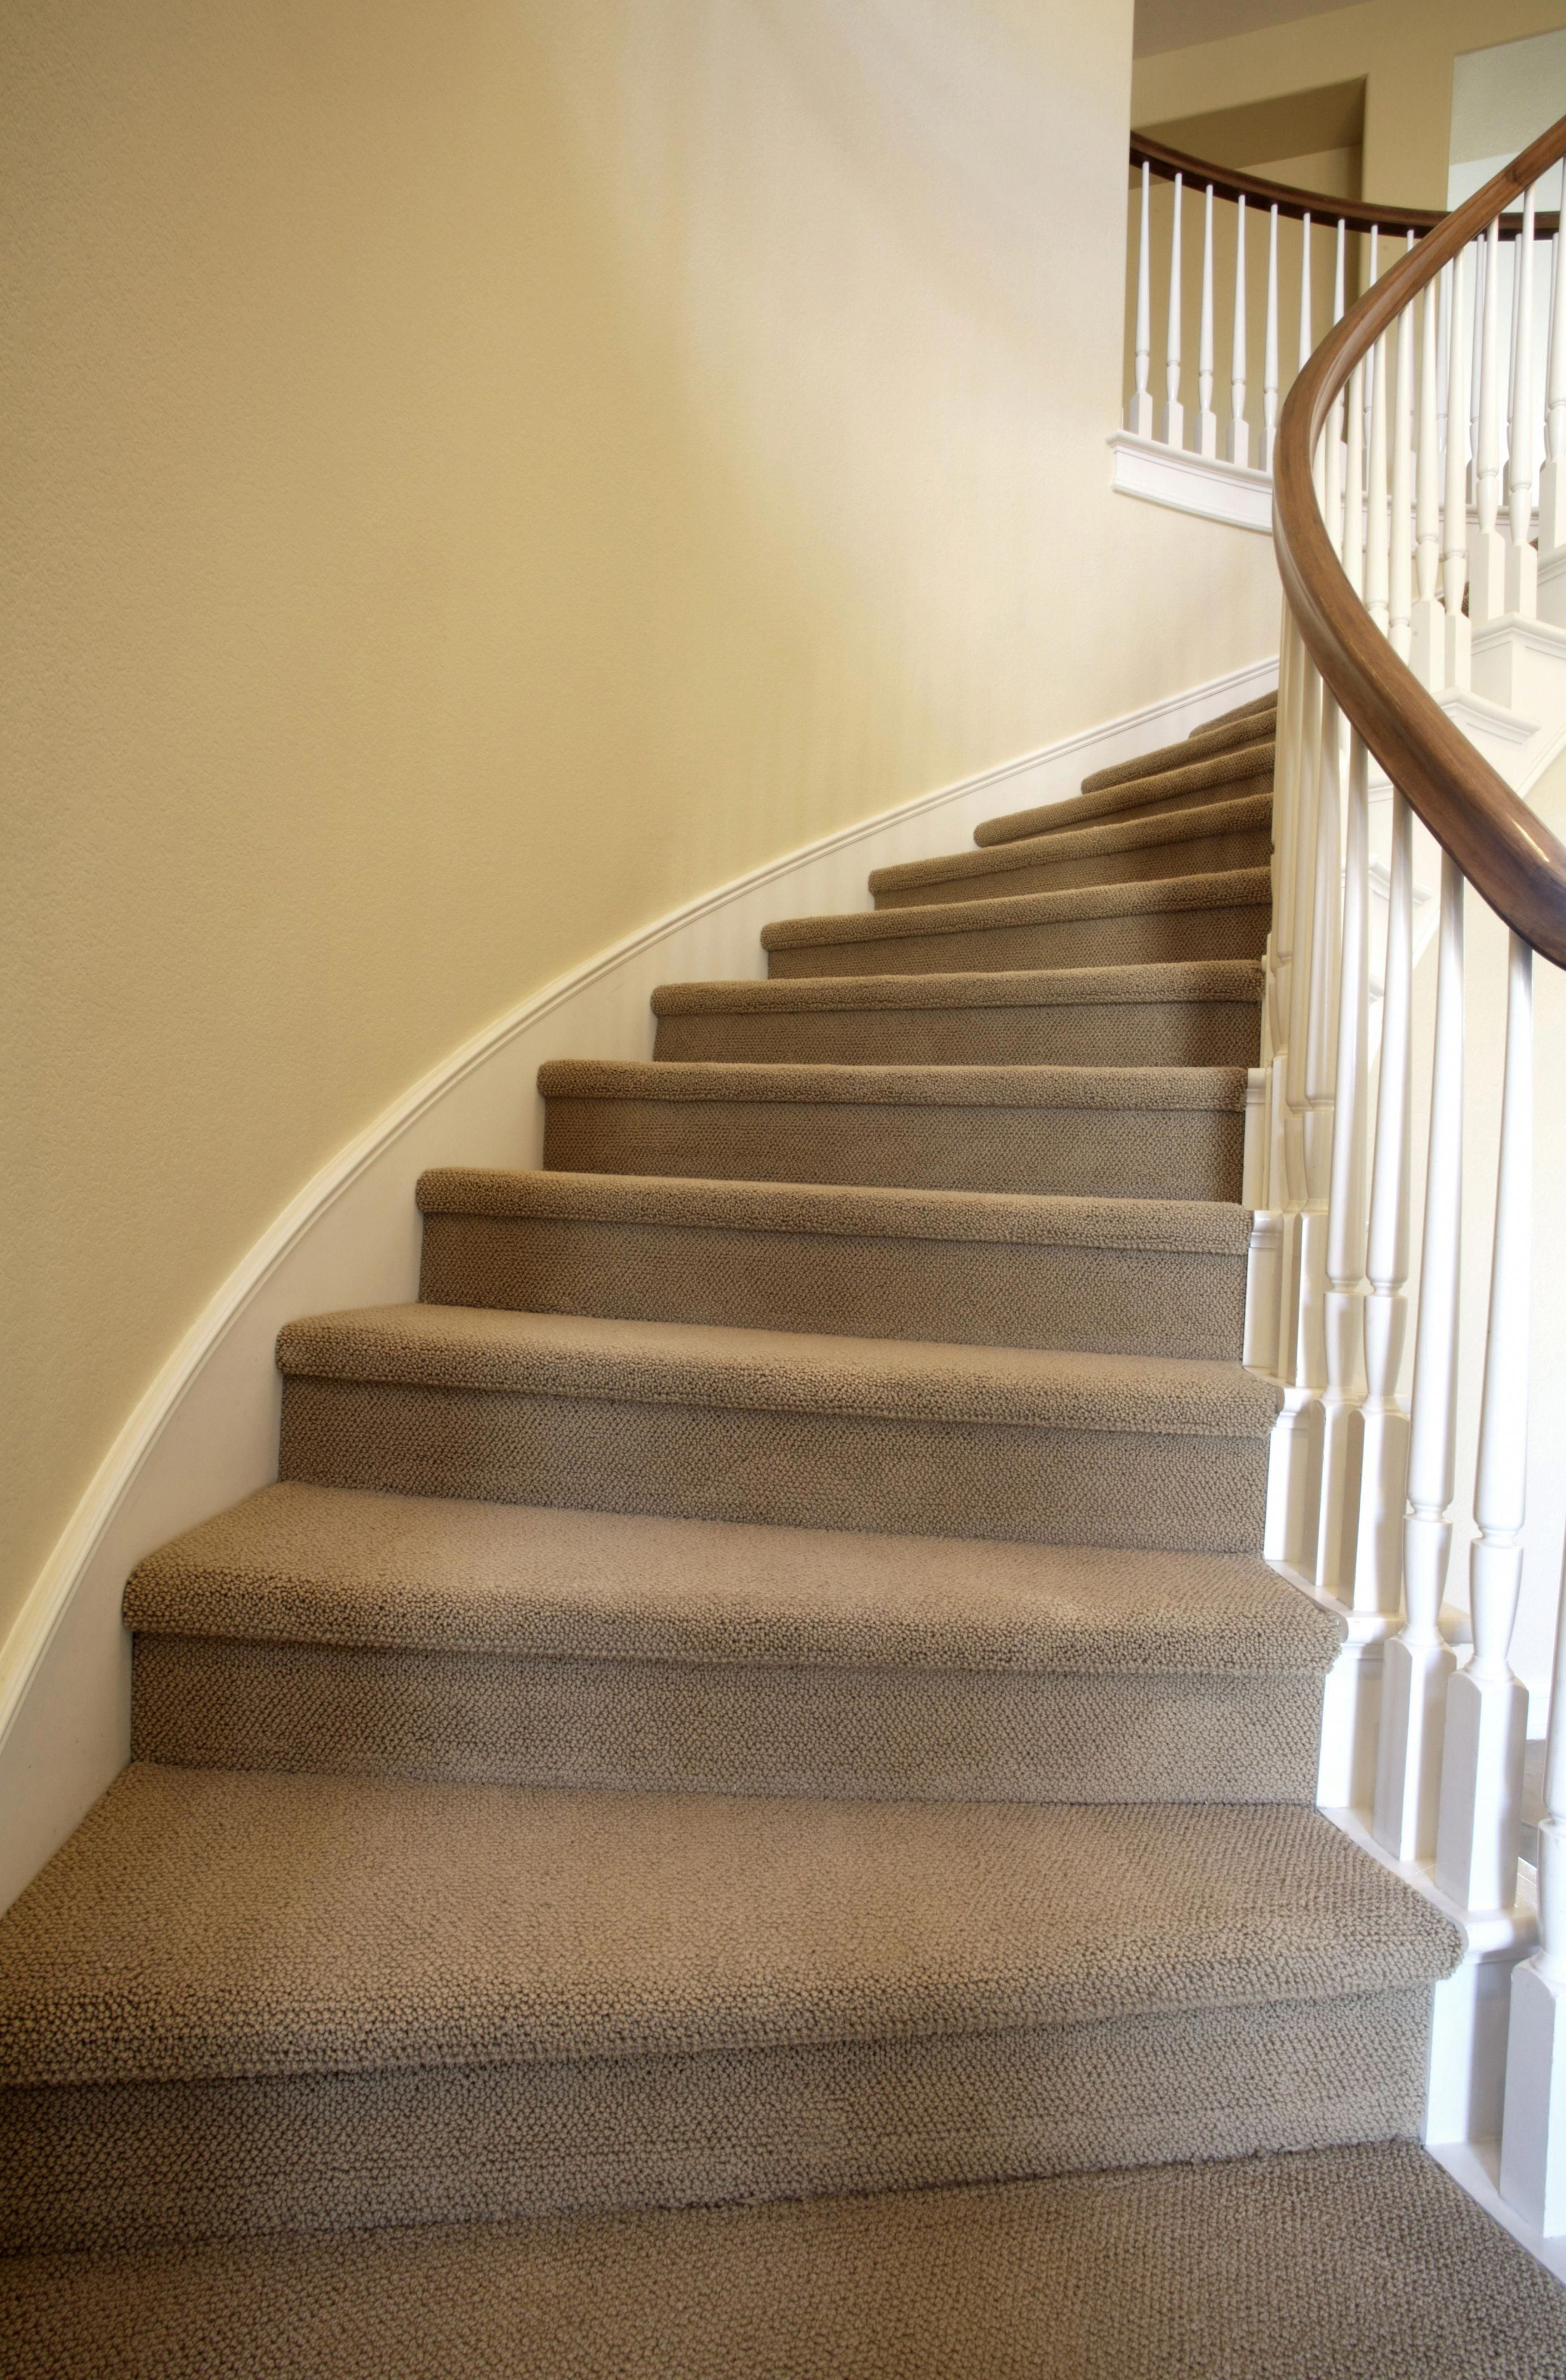 Carpet Runners Over Carpeted Stairs Redcarpetrunnersforrent Info   Beige Carpet On Stairs   Pattern   Dark Beige   Nice   Bound Edge   Hardwood Transition